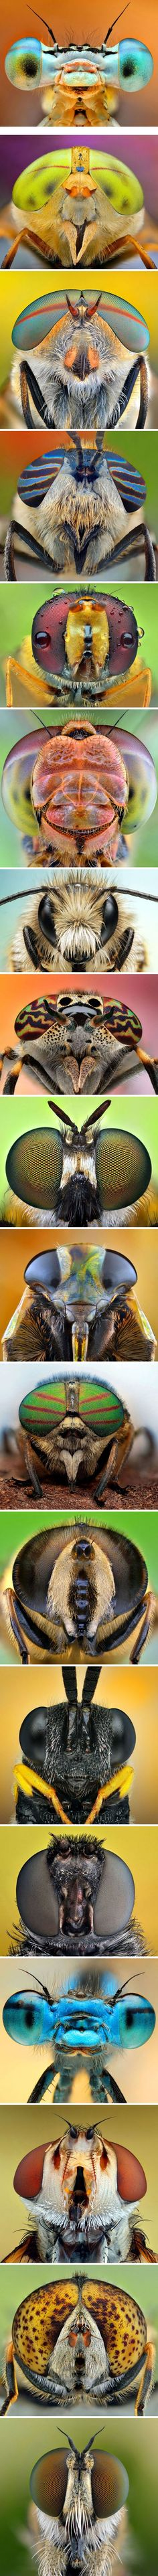 Photographer Ireneusz Irass Waledzik - collection of fascinating facet eyes of dragonflies, bees and flies.